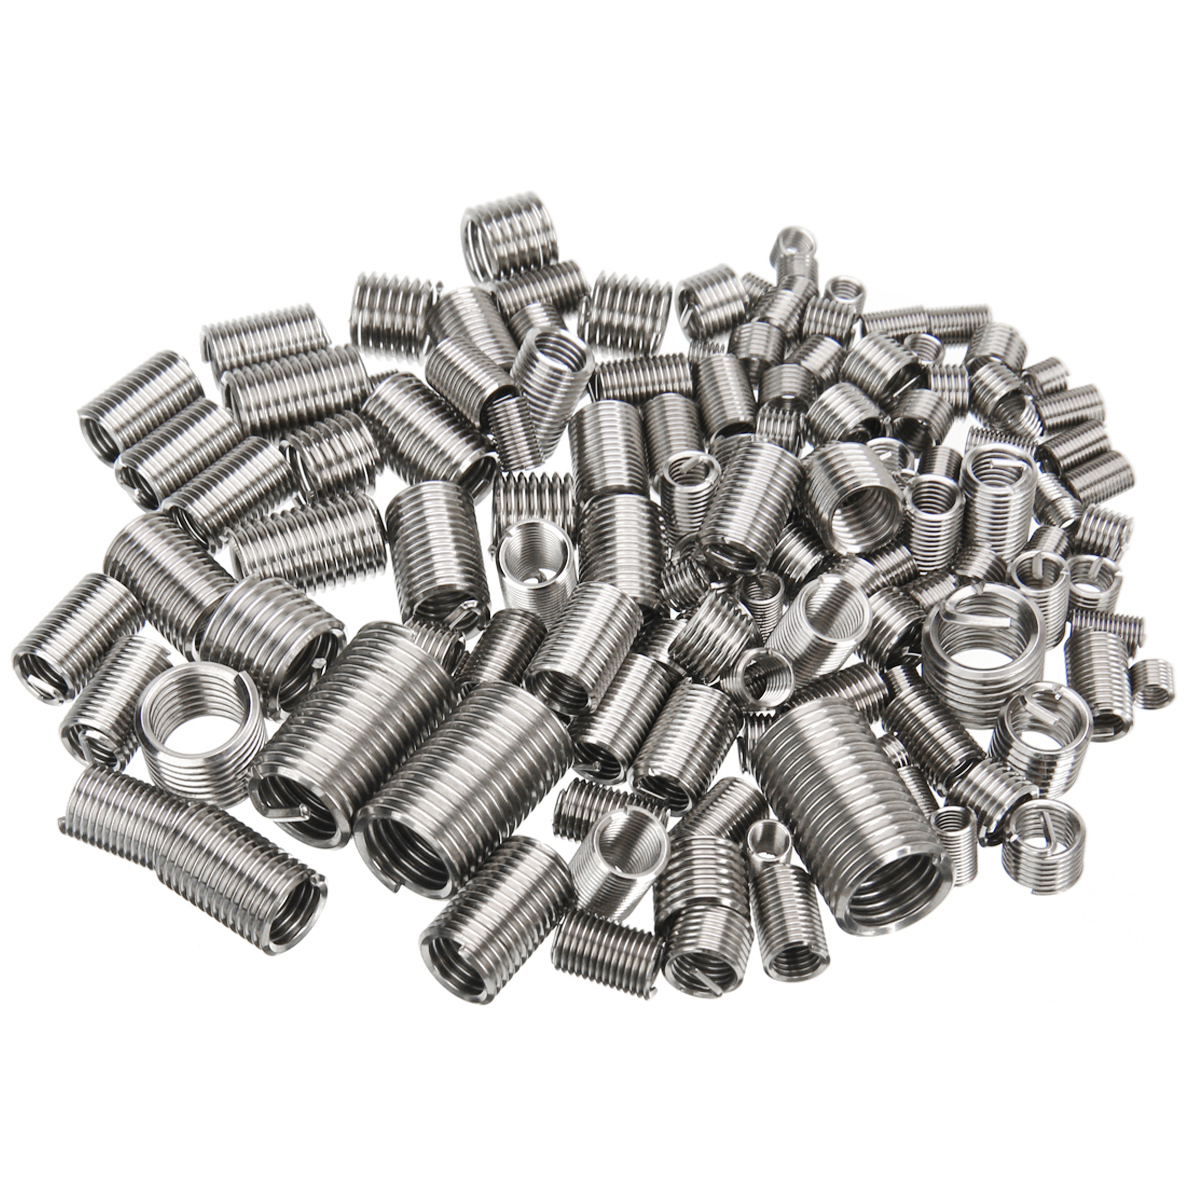 150pcs Stainless Steel Thread Repair Insert Kit M3 M4 M5 M6 M8 Helicoil Rivet Nut Kit